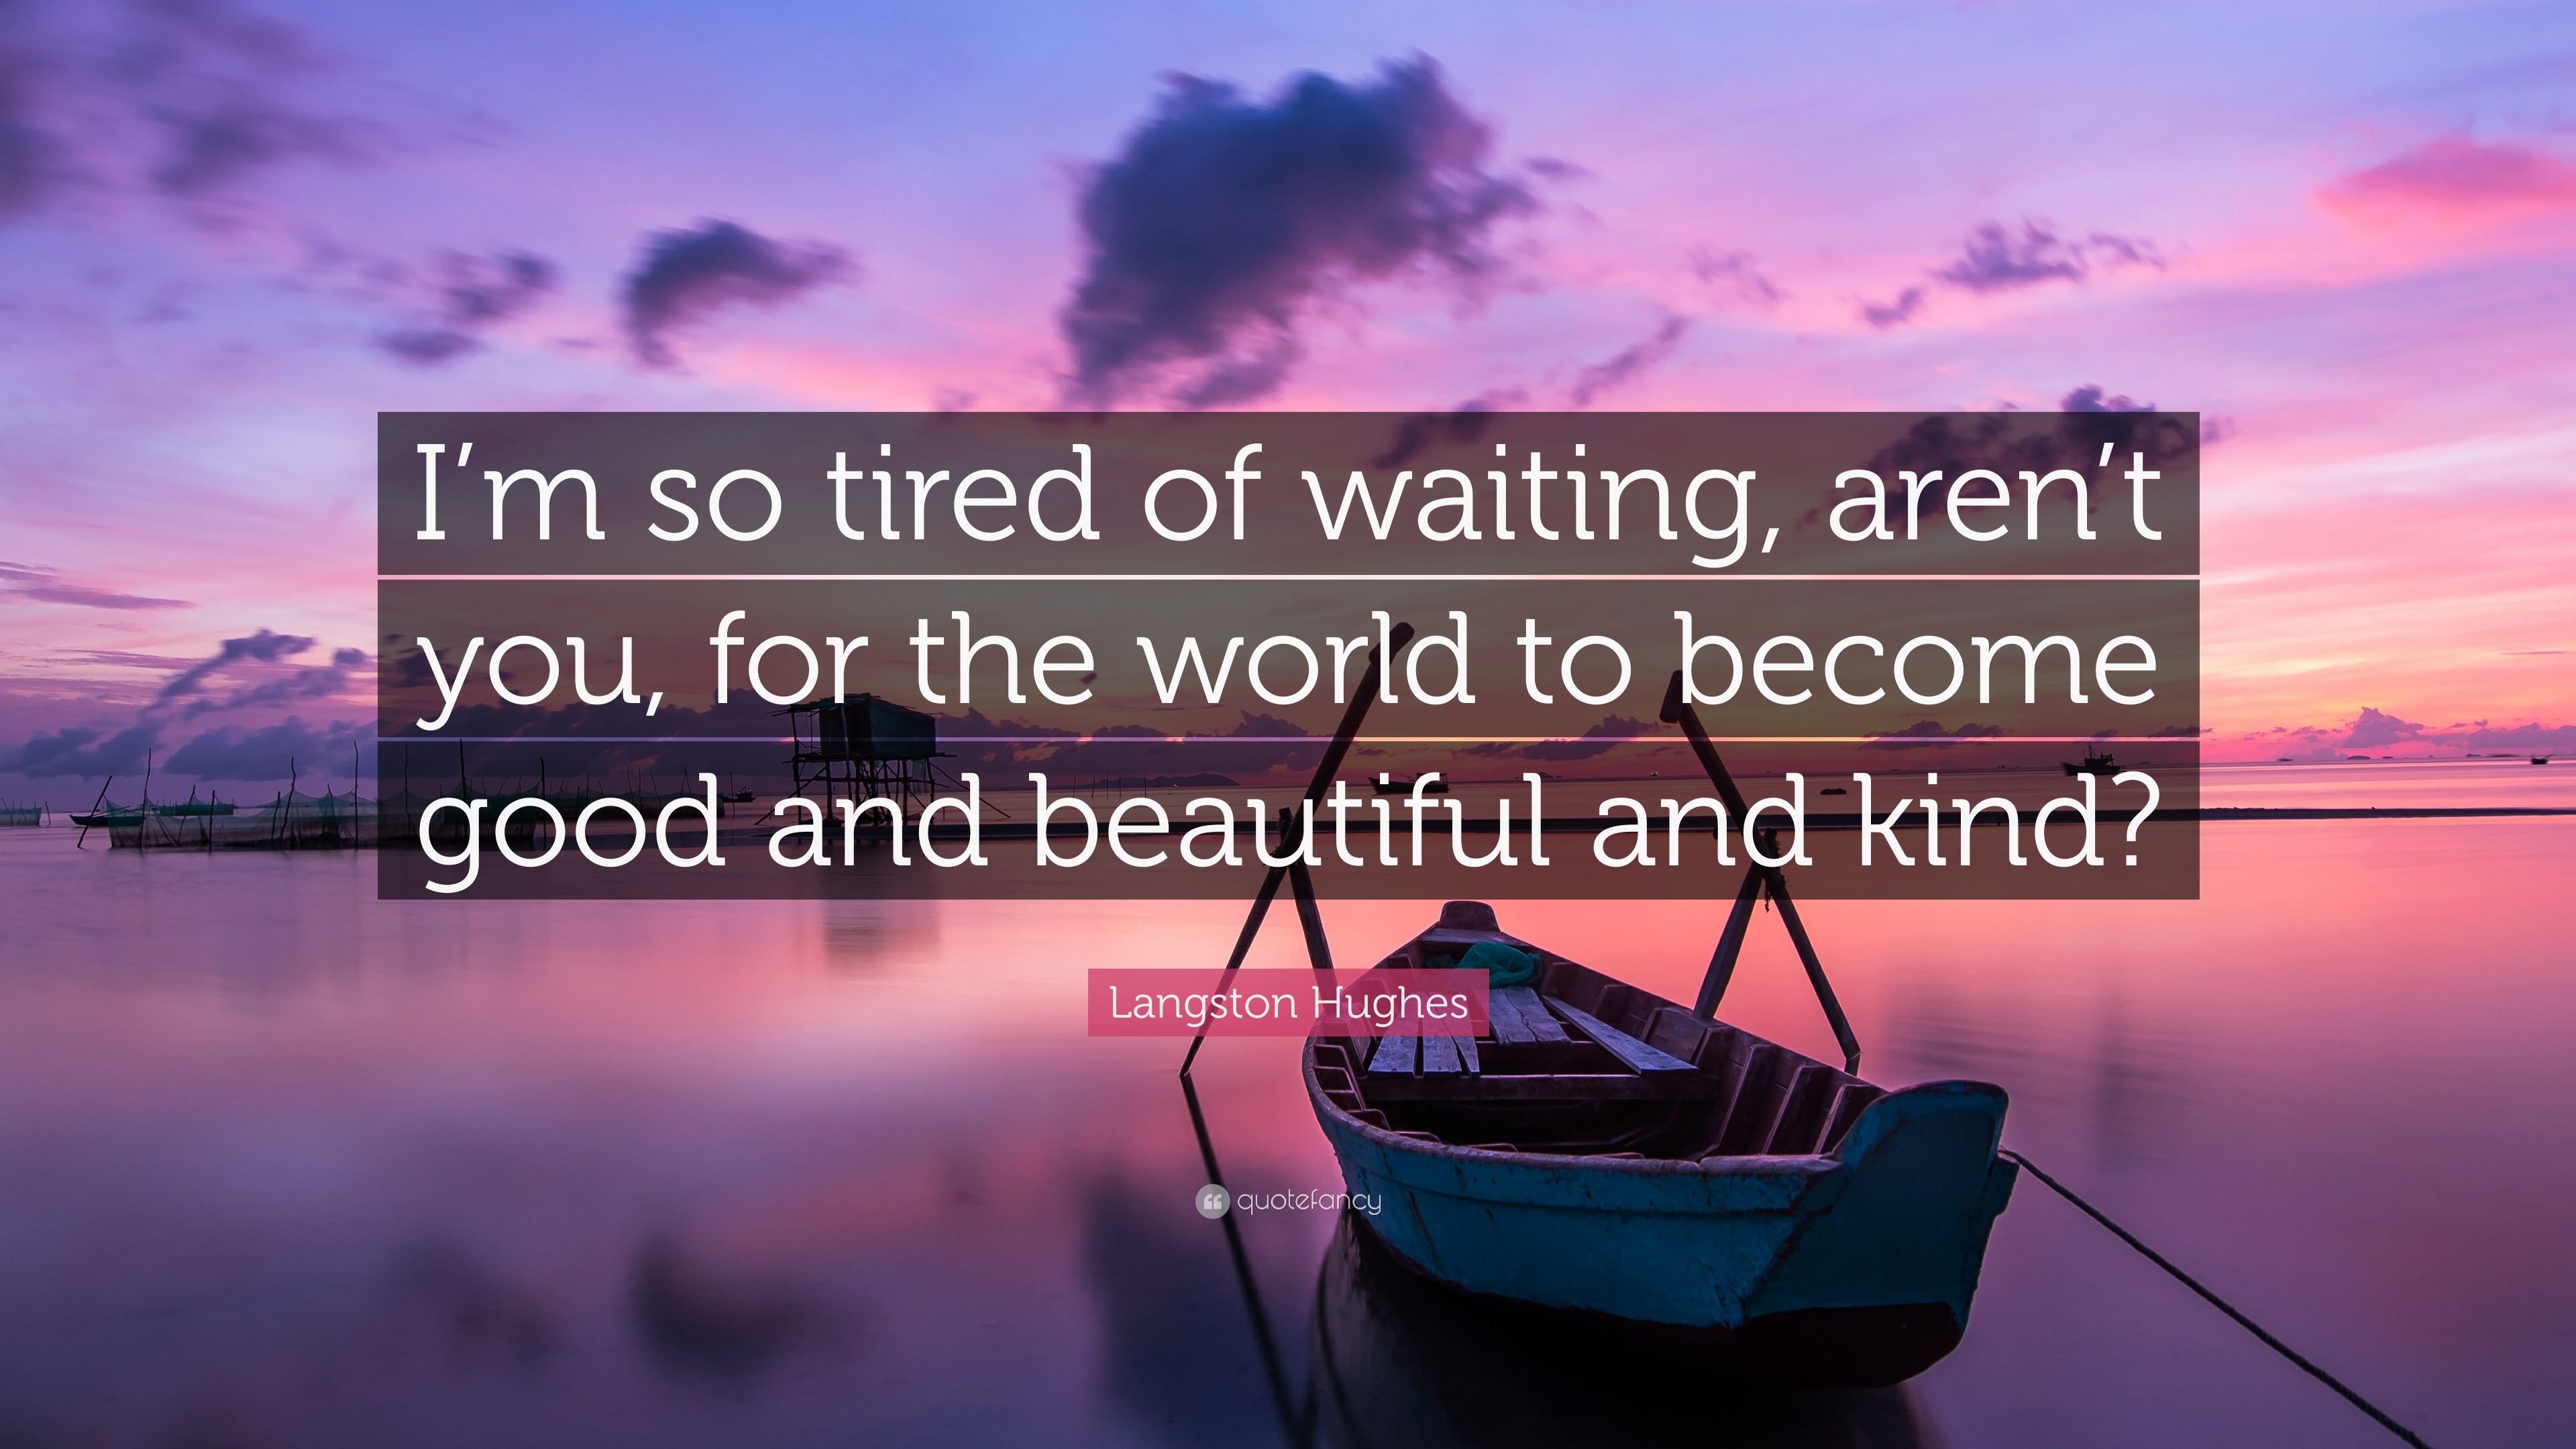 Langston Hughes Quote: Im so tired of waiting, arent